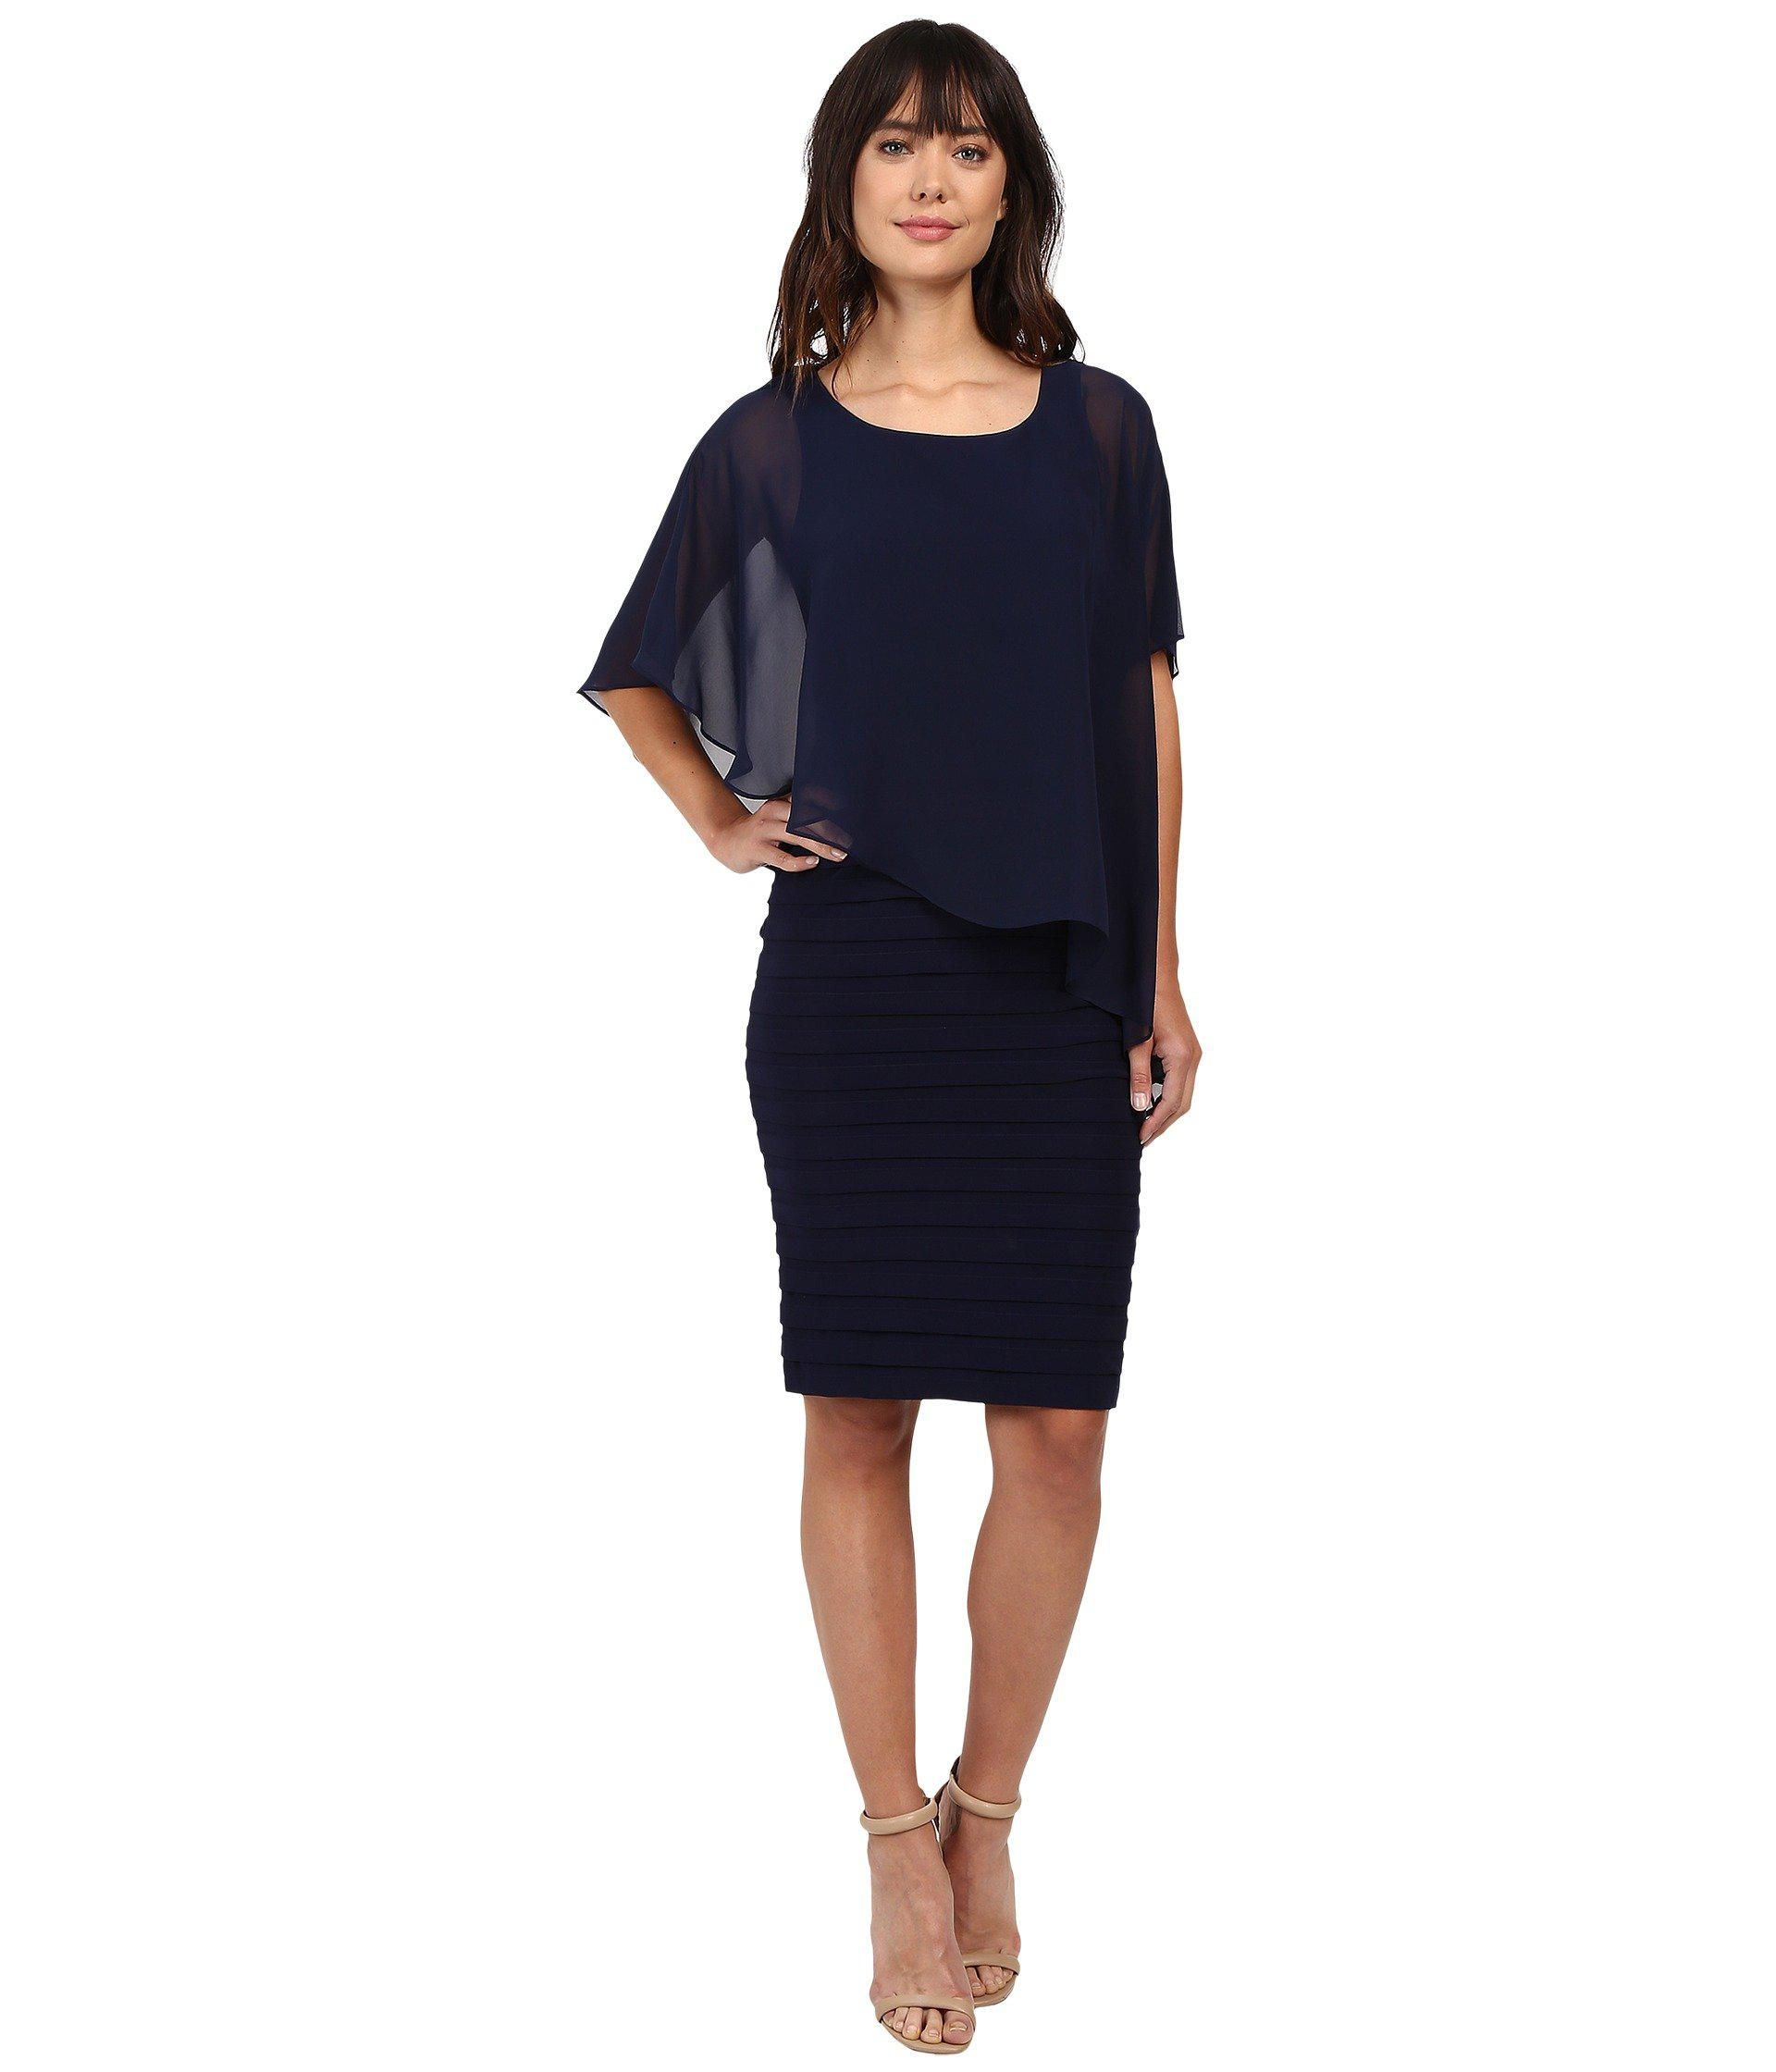 15b7aa6f3451 Adrianna Papell Chiffon Drape Overlay With Banding in Blue - Lyst